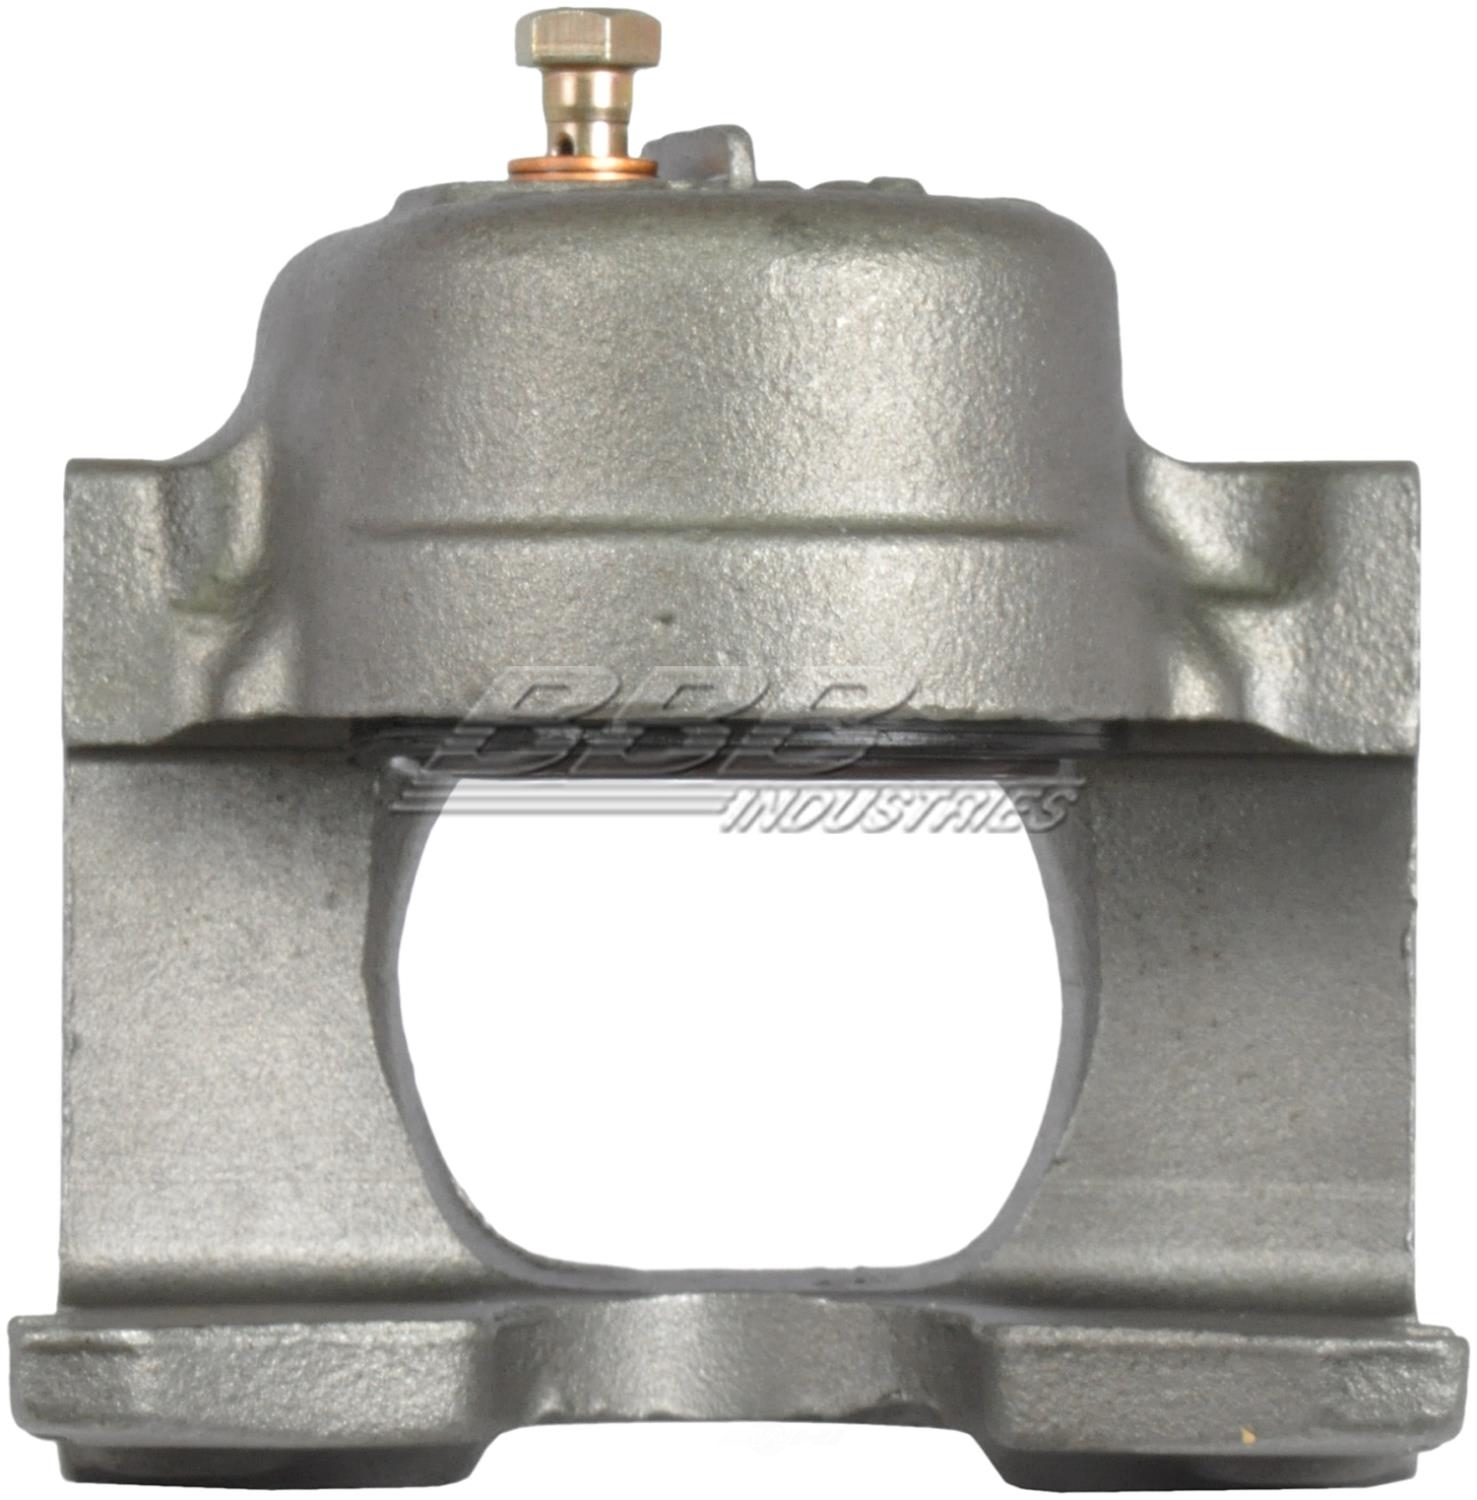 BBB INDUSTRIES - Reman Caliper W/installation Hardware - BBA 97-01132A